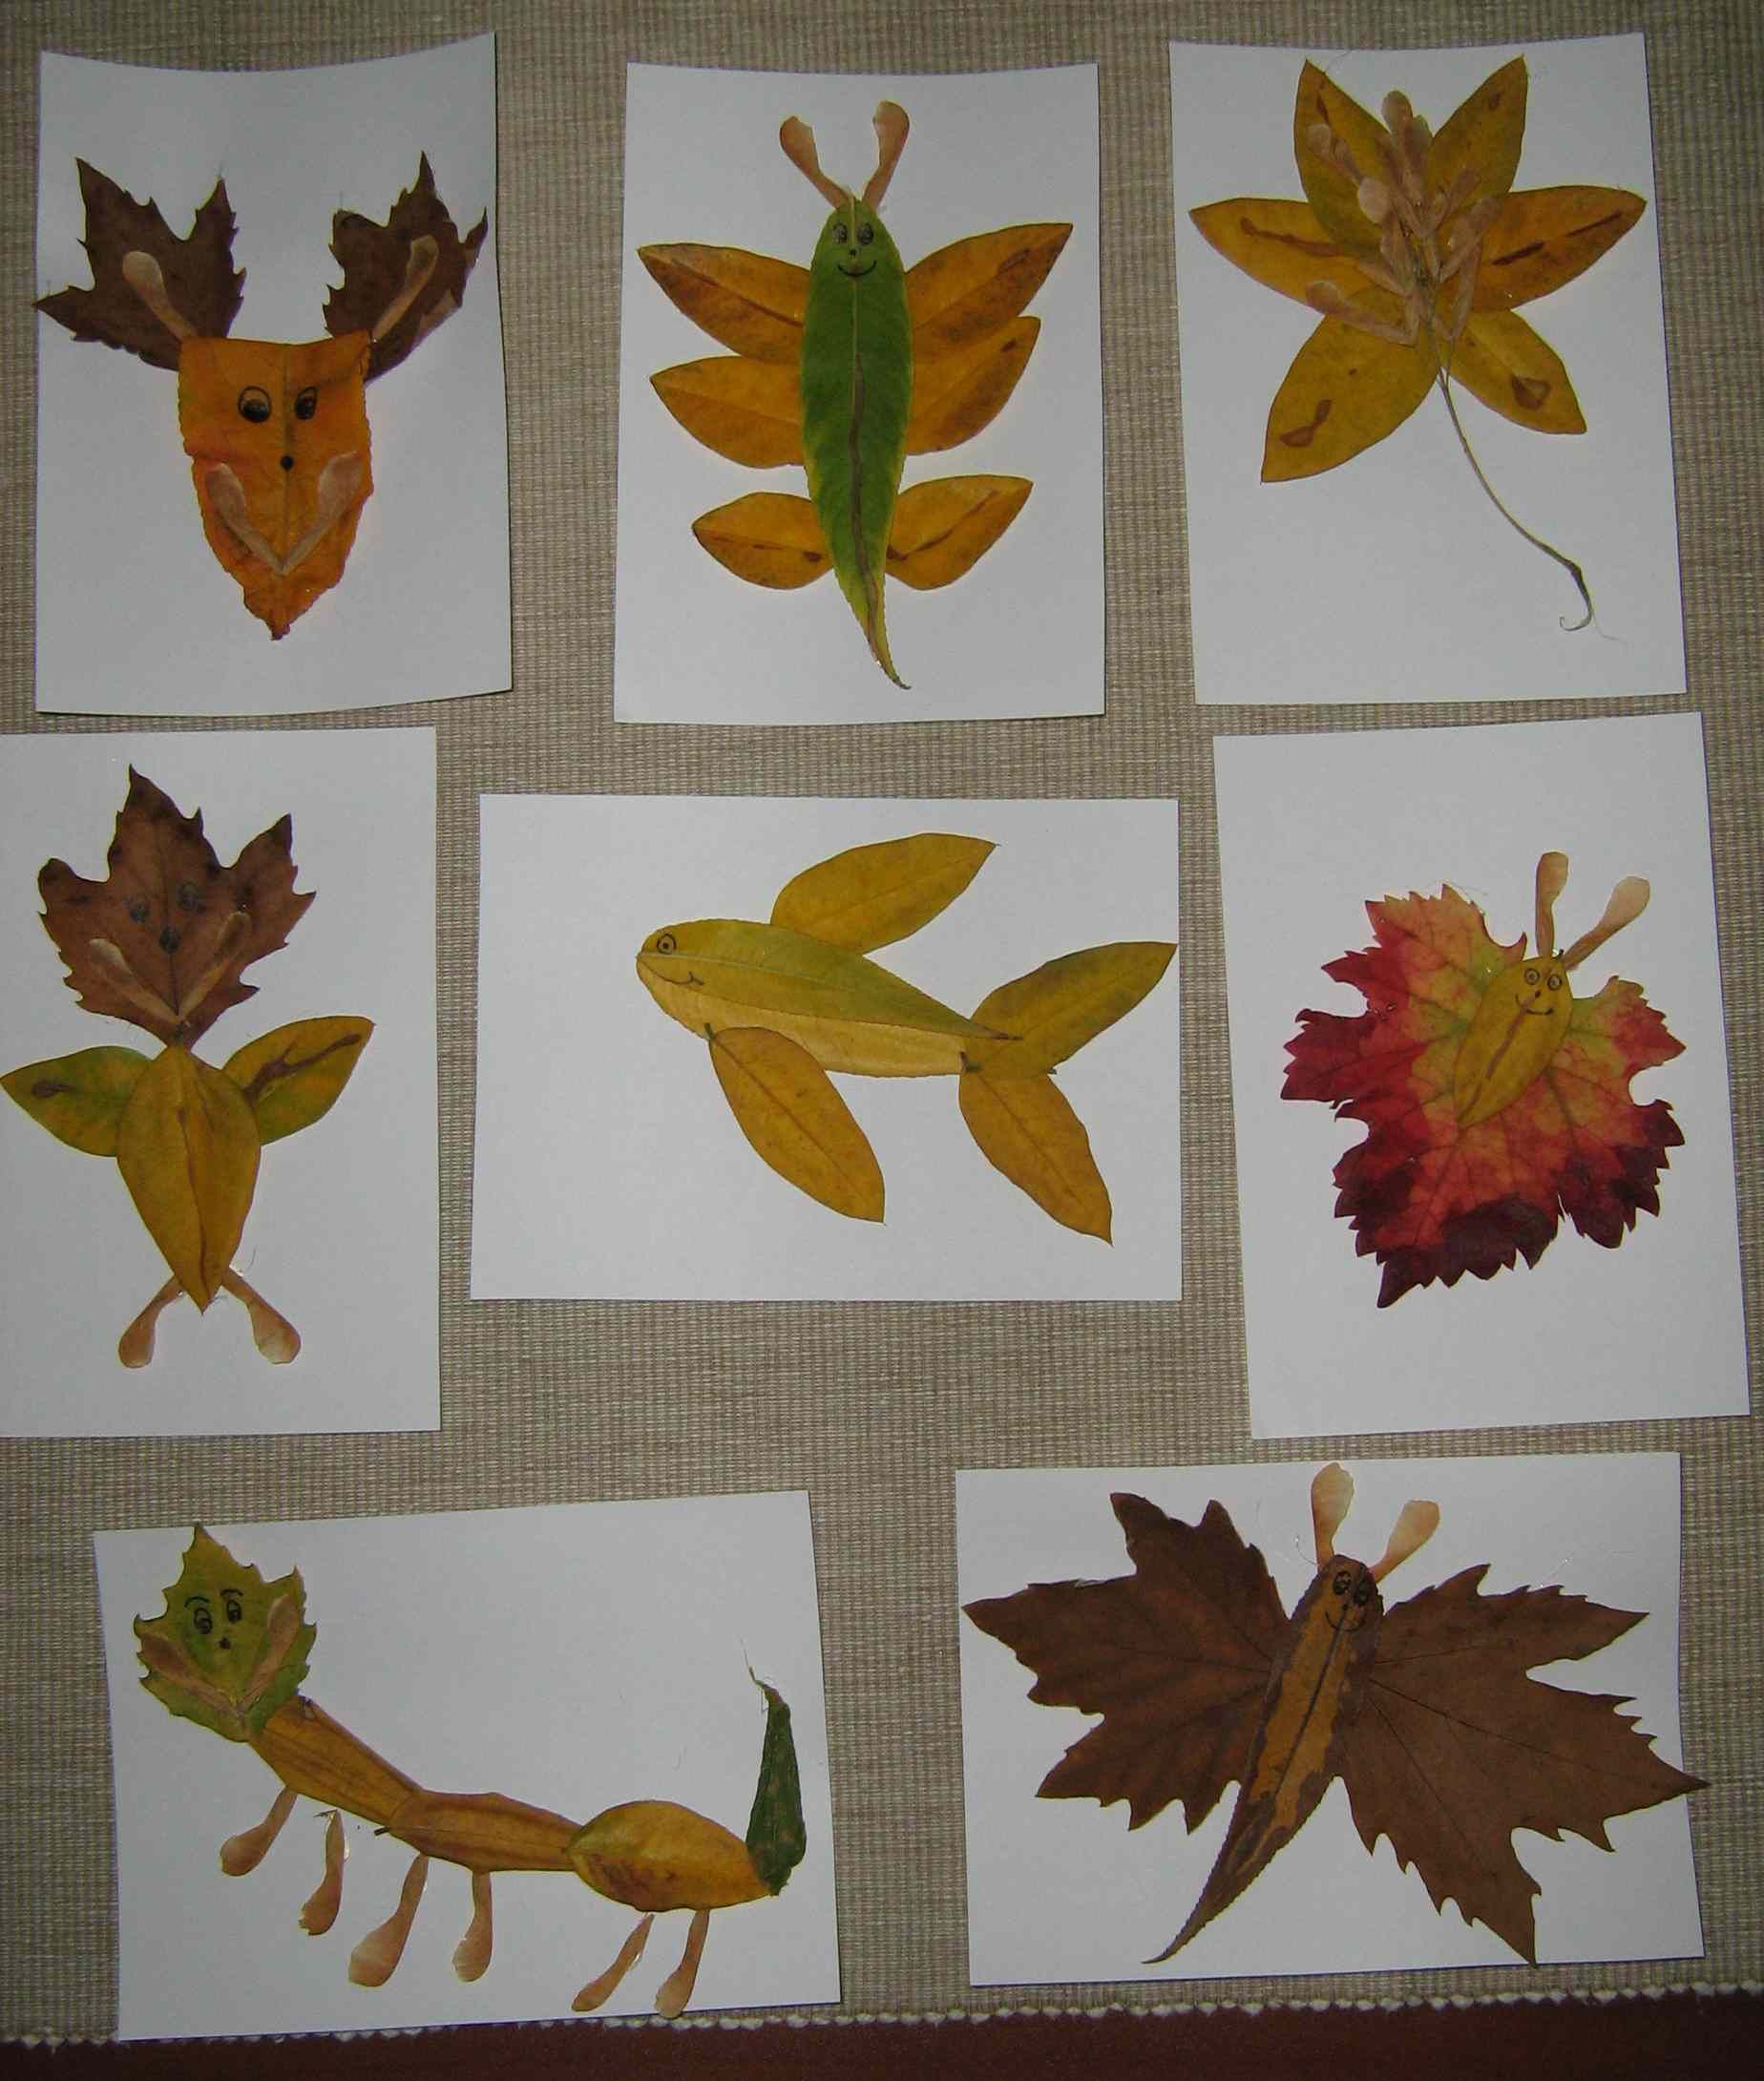 Making Pictures With Leaves Craft Re Pinned By Jenn L